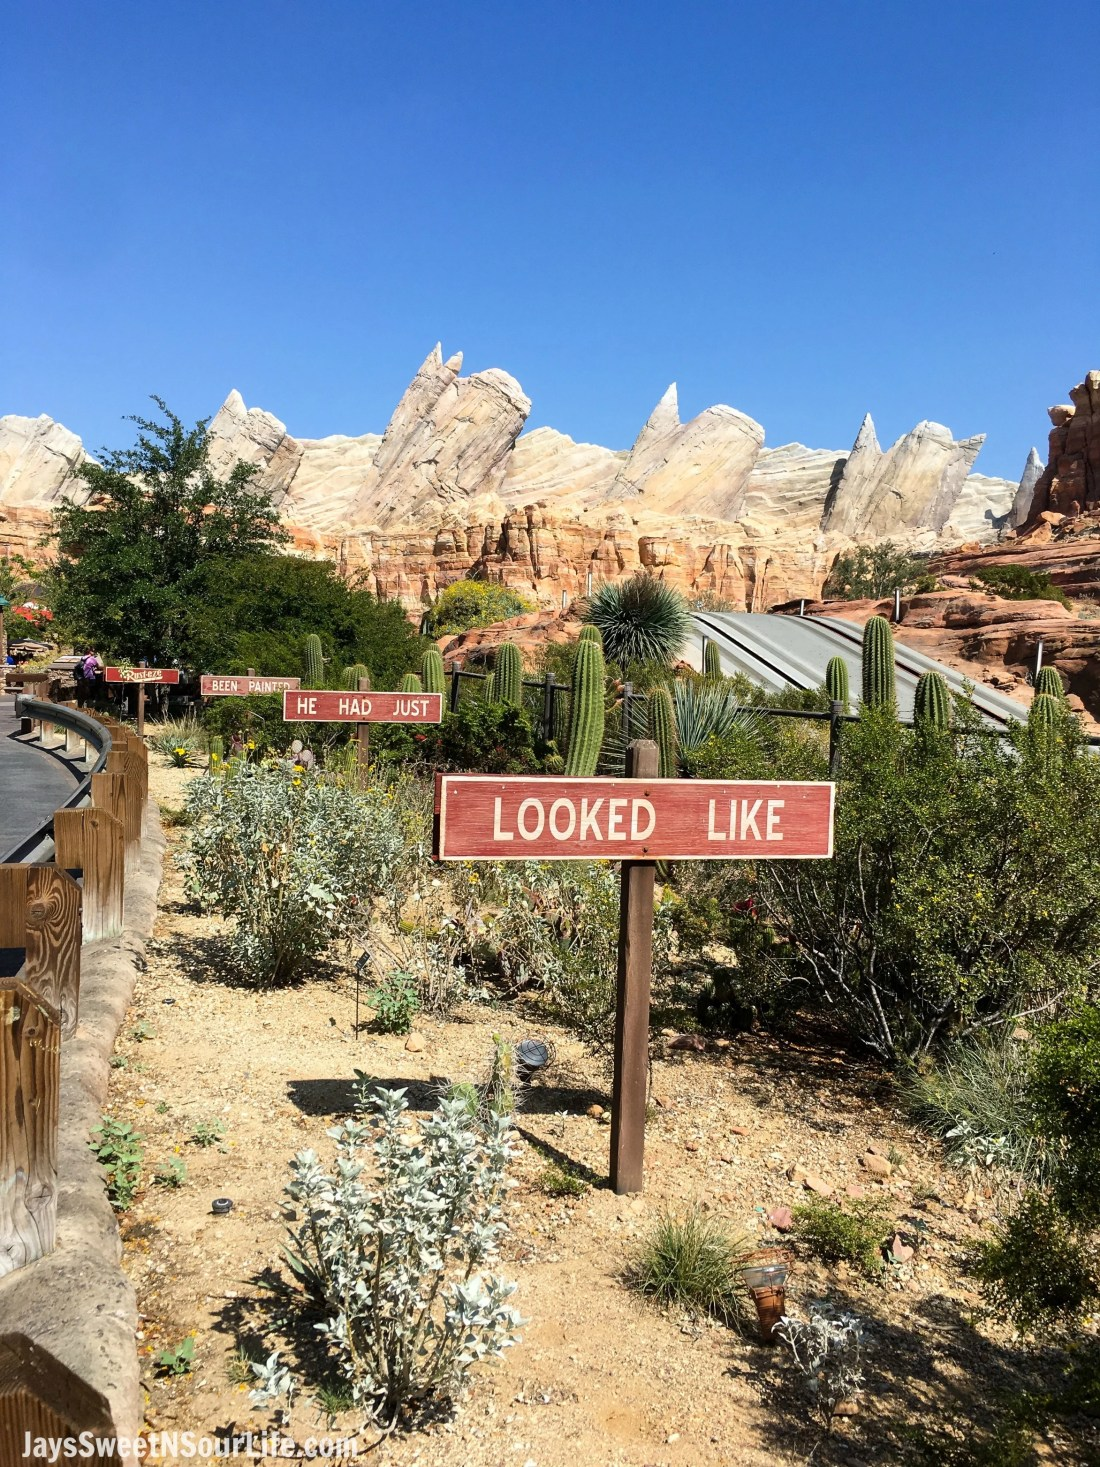 Radiator Springs Disneyland California. Pixar Fest at Disneyland runs from April 13 through September 3rd.